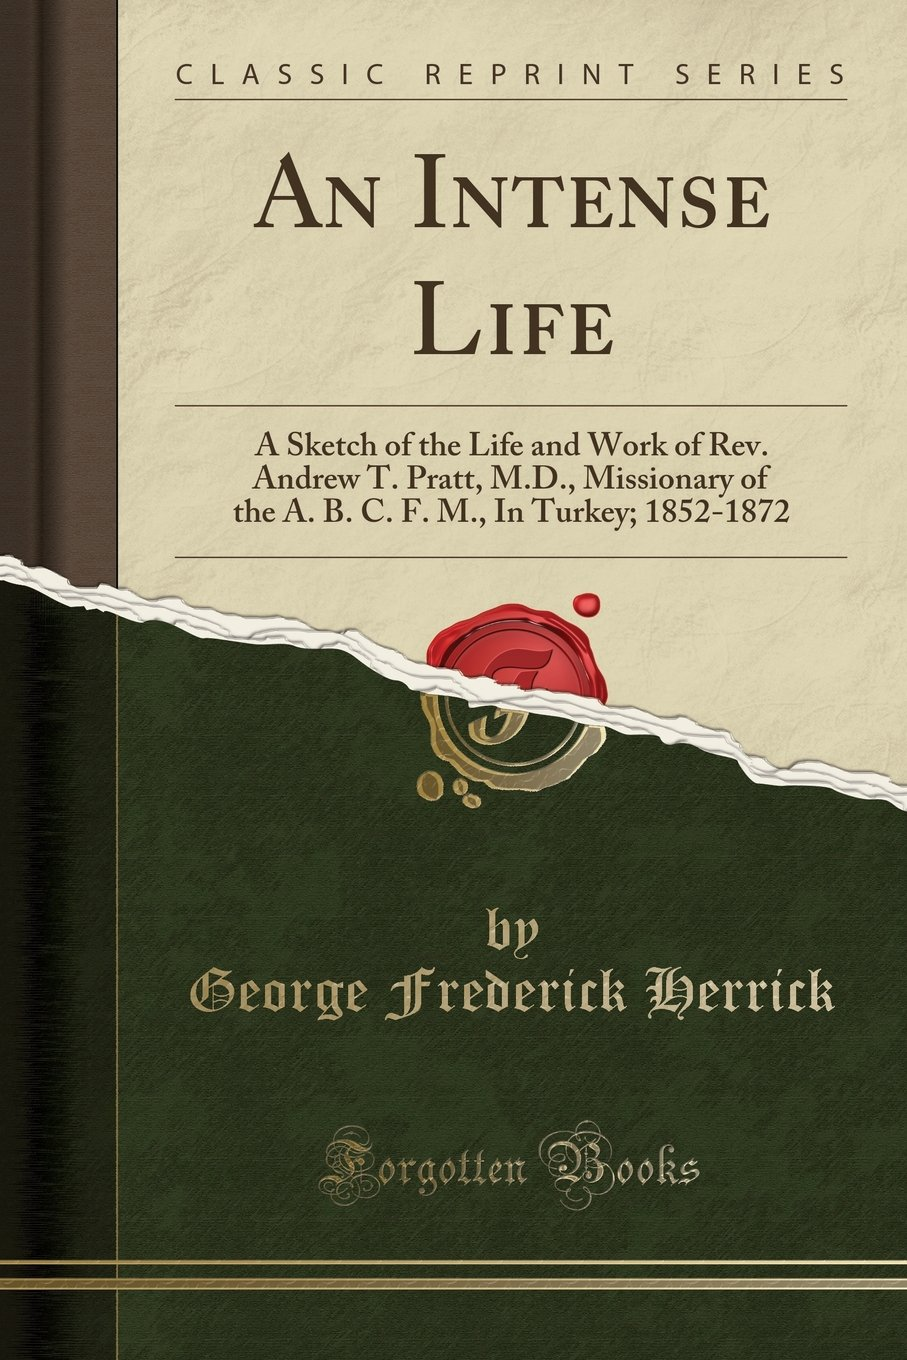 Read Online An Intense Life: A Sketch of the Life and Work of Rev. Andrew T. Pratt, M.D., Missionary of the A. B. C. F. M., In Turkey; 1852-1872 (Classic Reprint) PDF